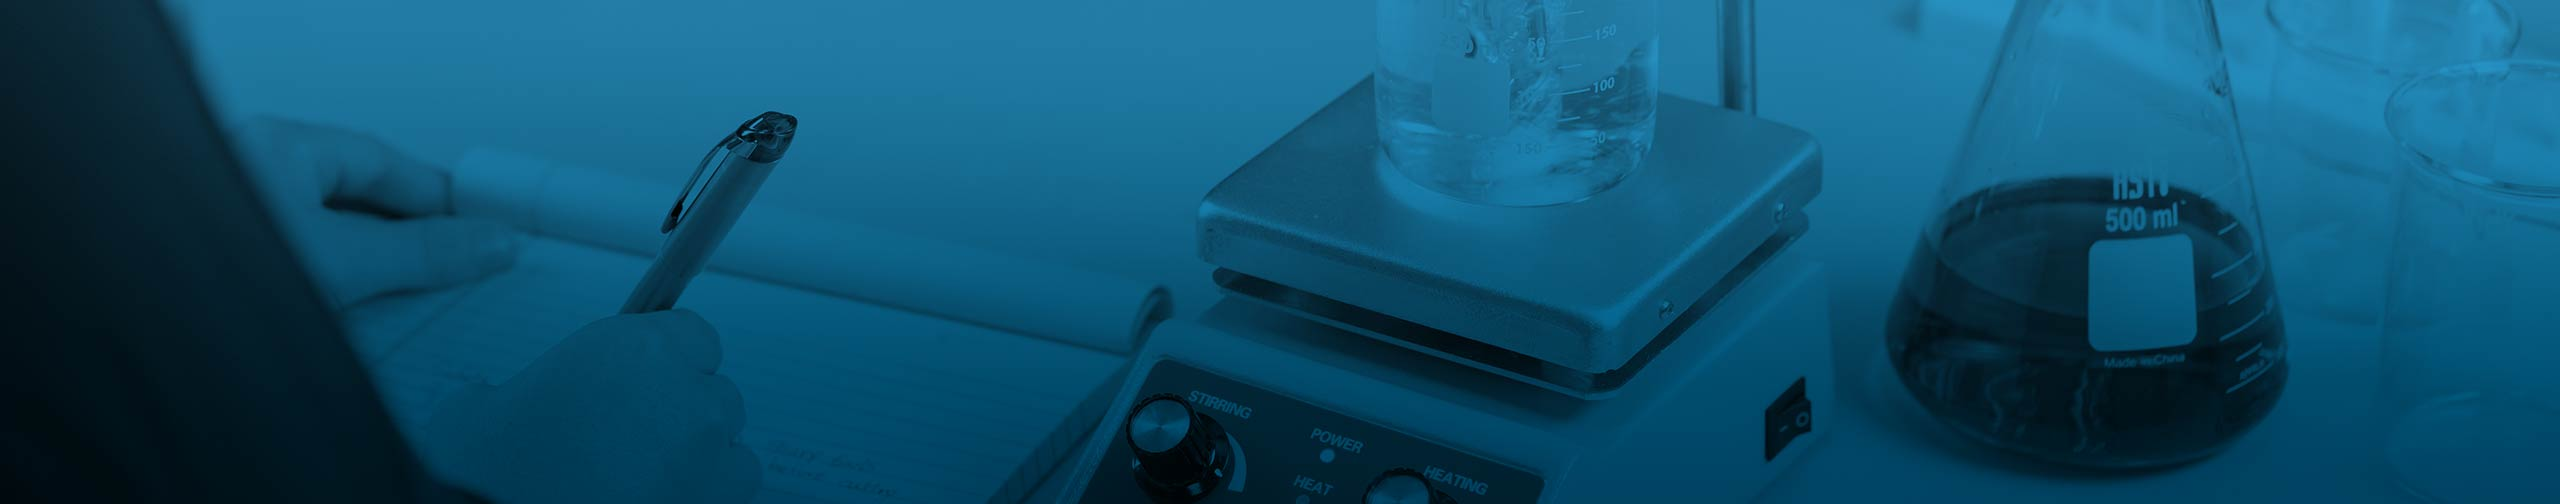 Chemistry Lab Equipment | Shop for Chemistry Supplies on HST